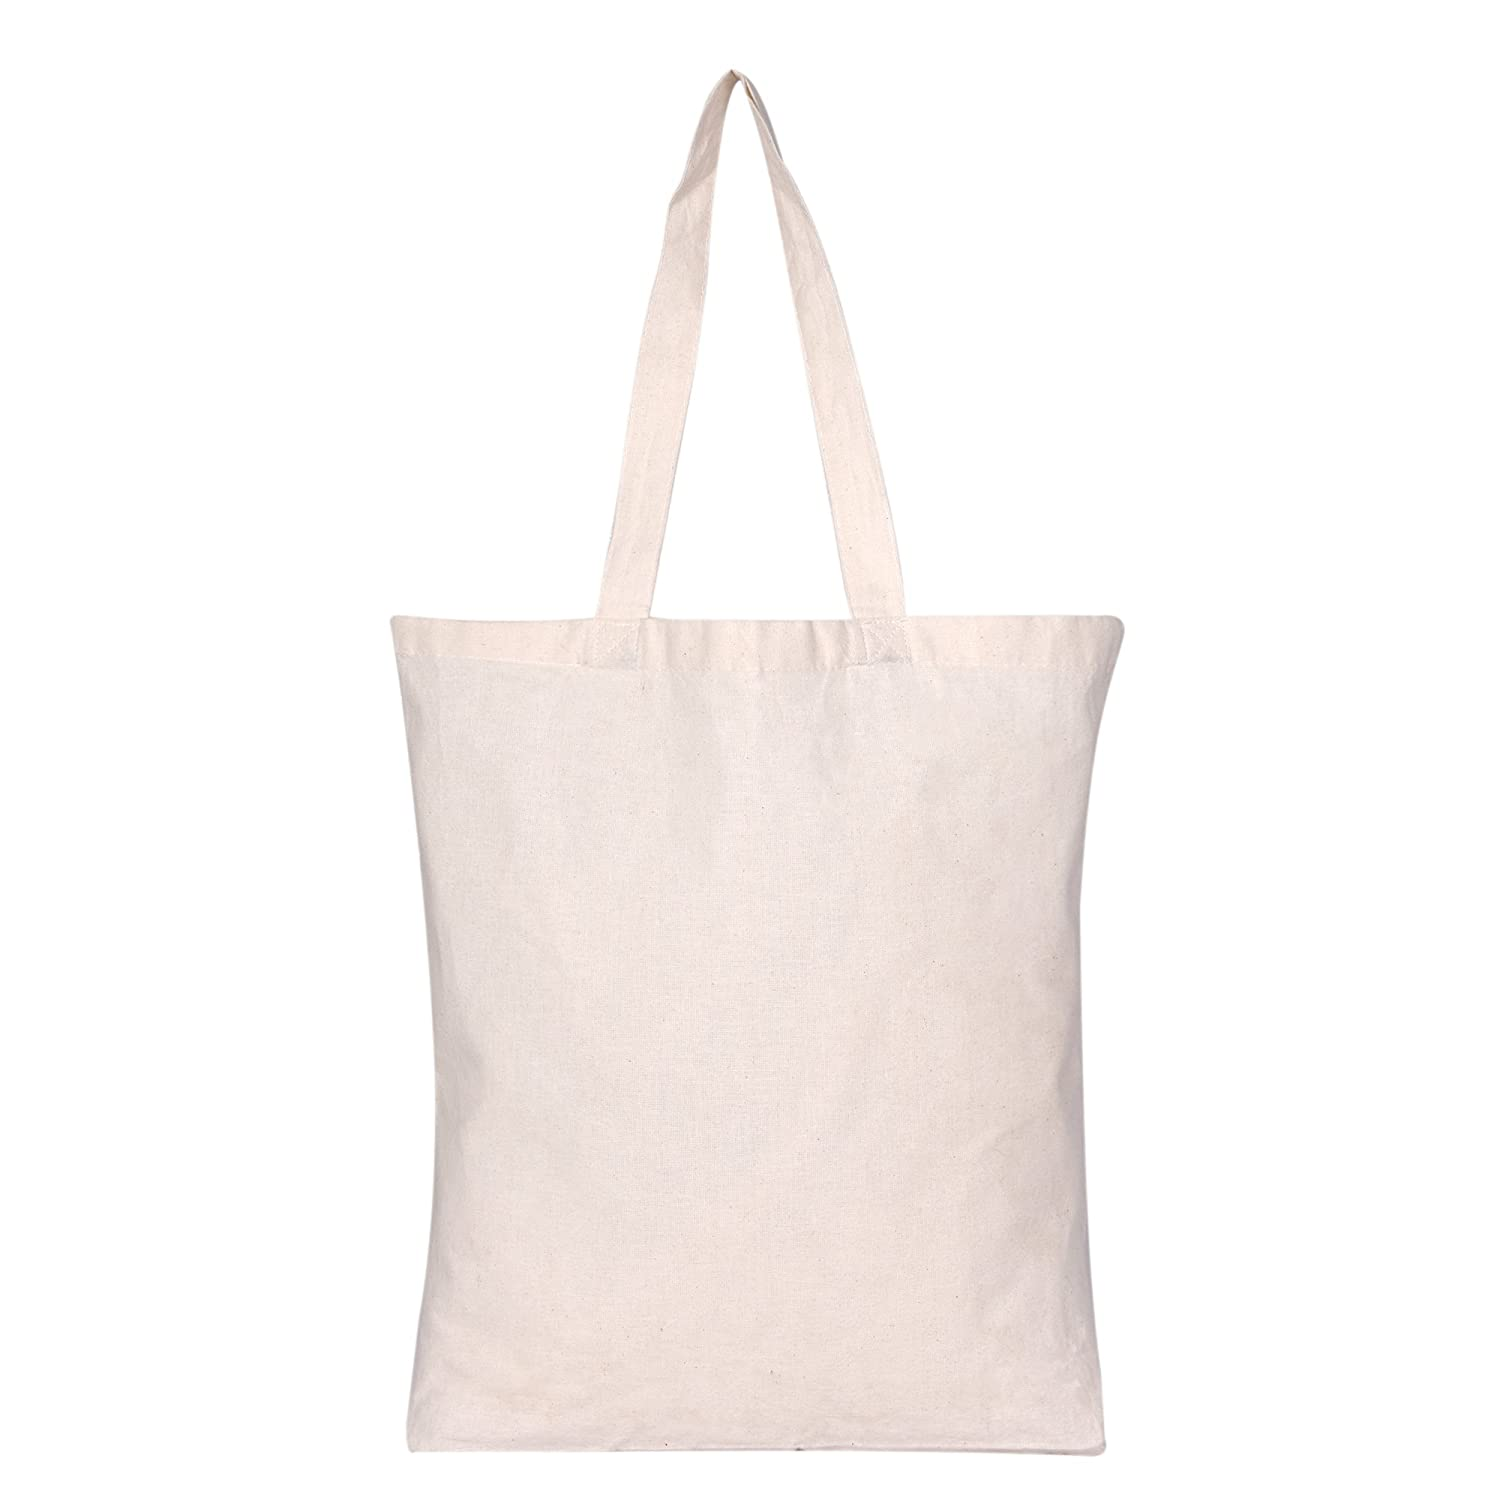 ef8aa48a14 Amazon.com  Set of 20 - Bulk Natural Cotton Canvas Tote Bags with ...